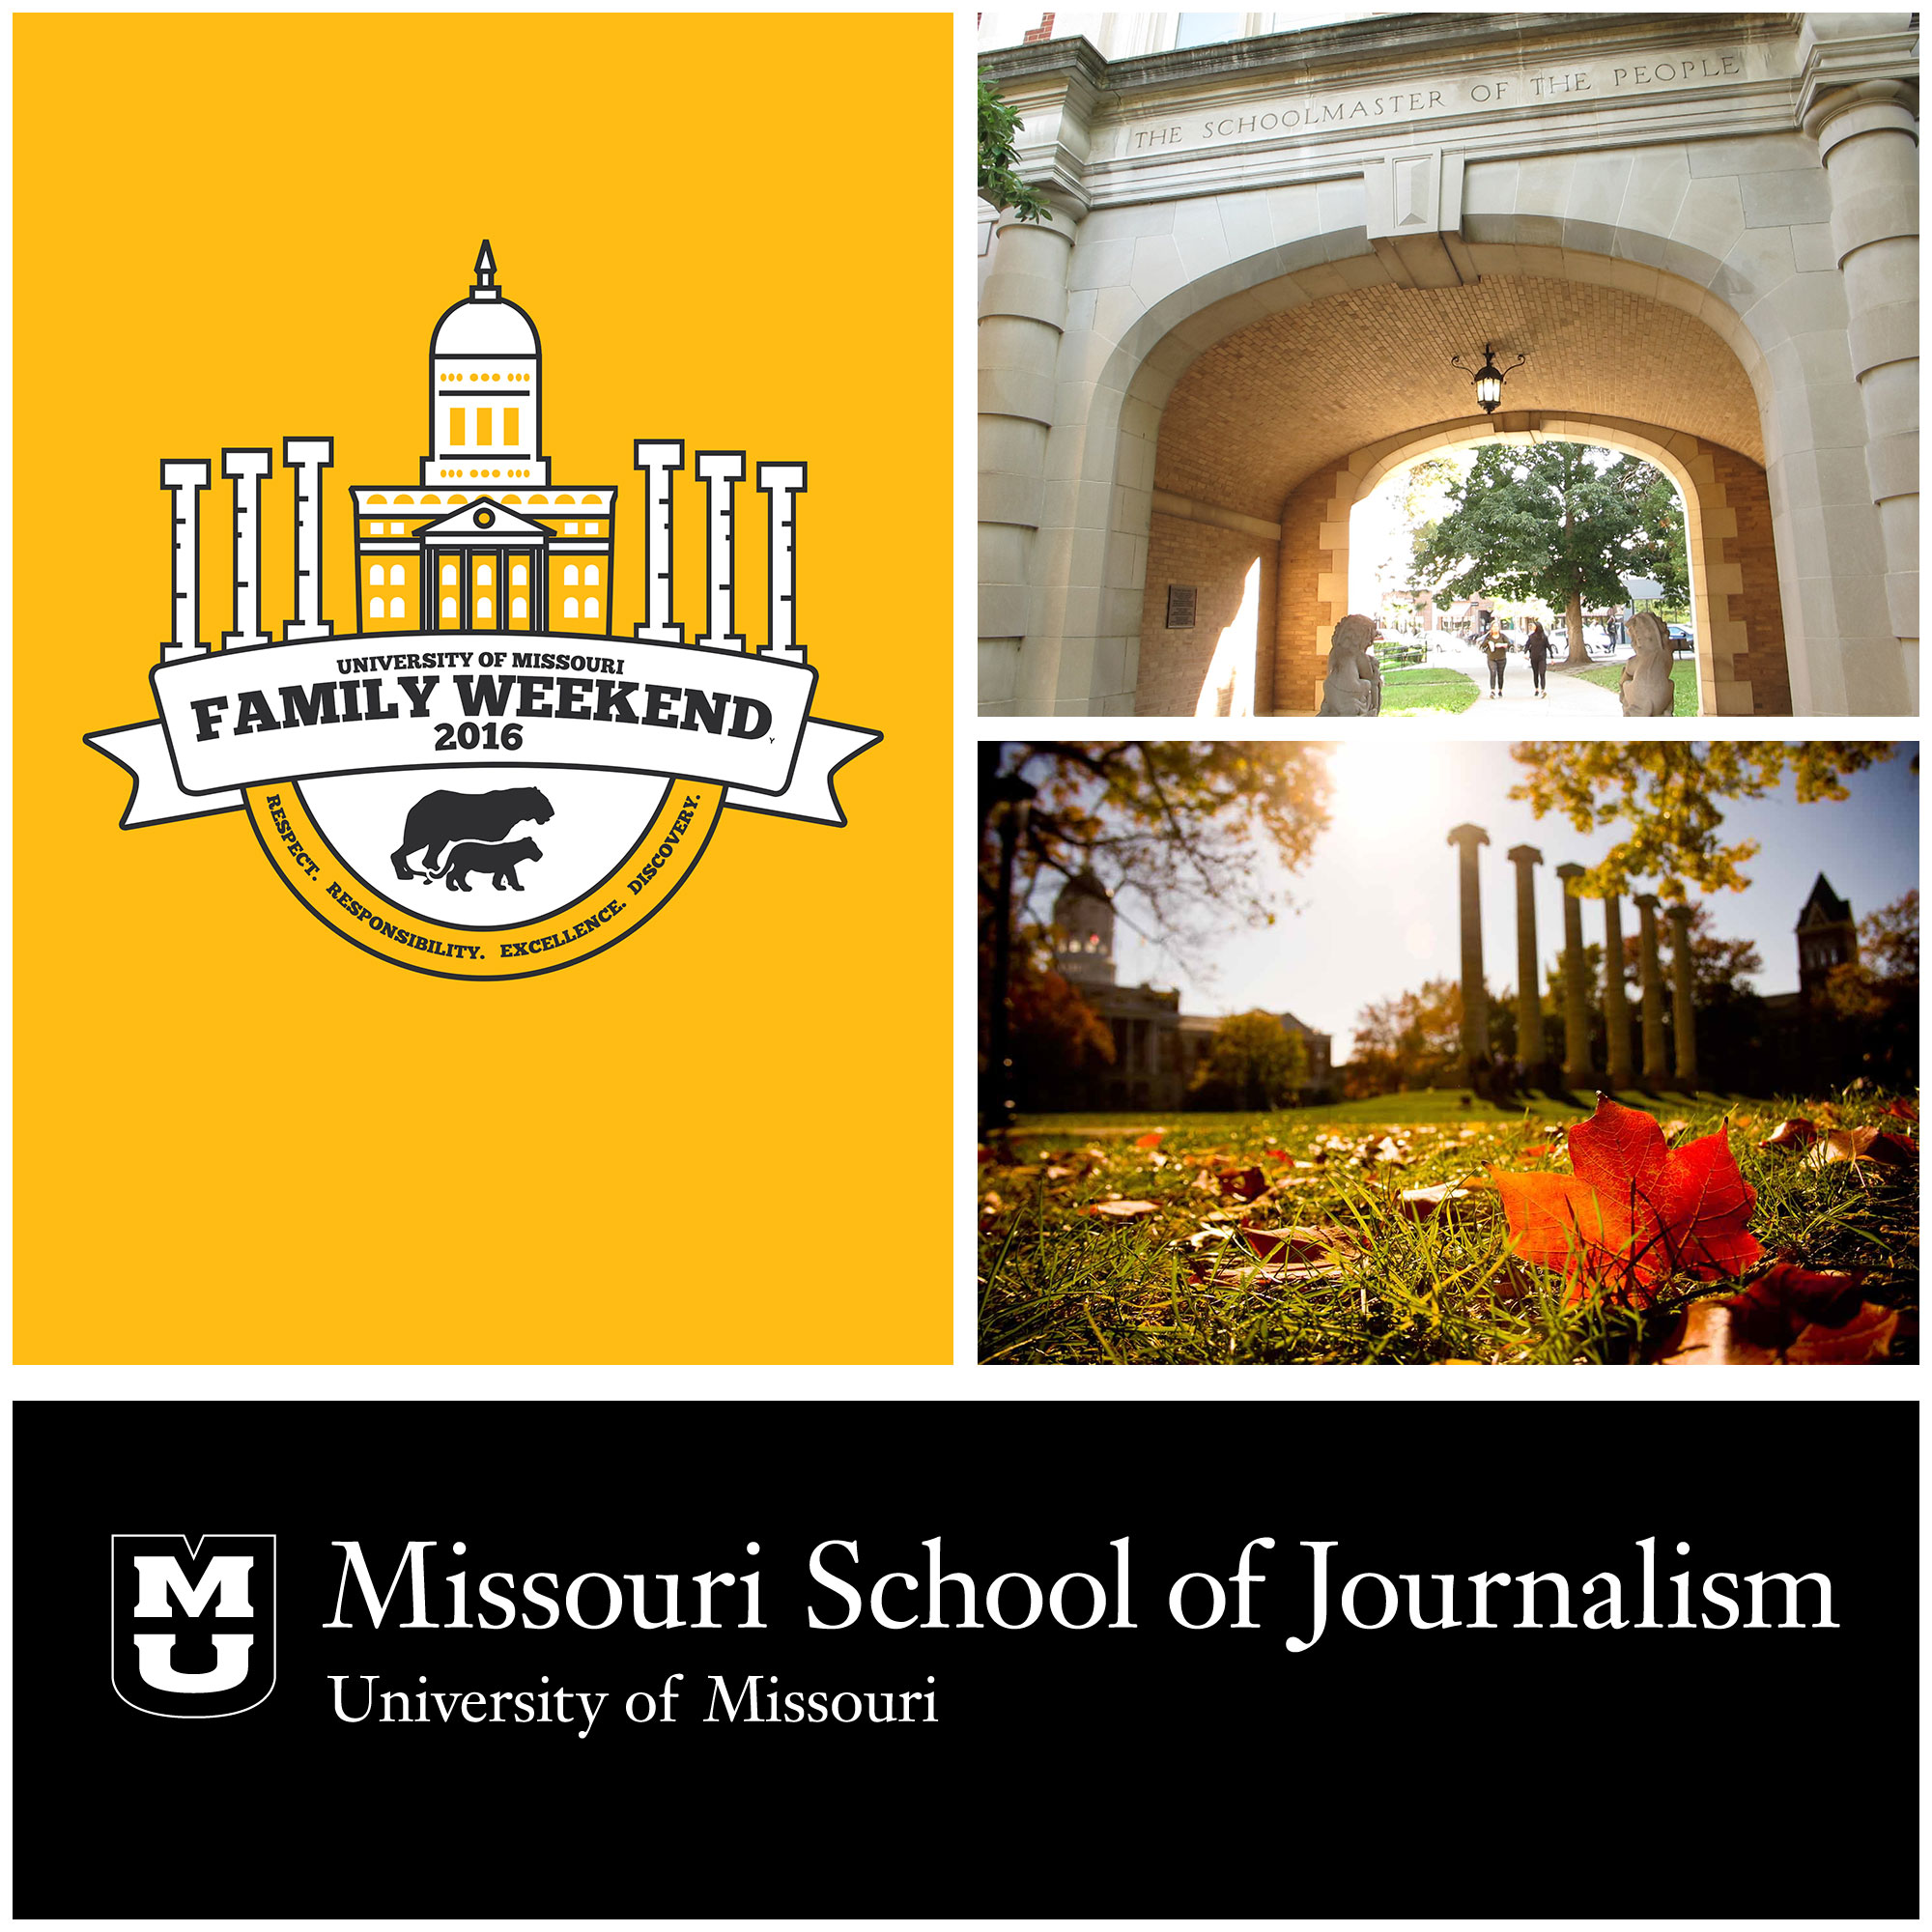 Family Weekend at the Missouri School of Journalism